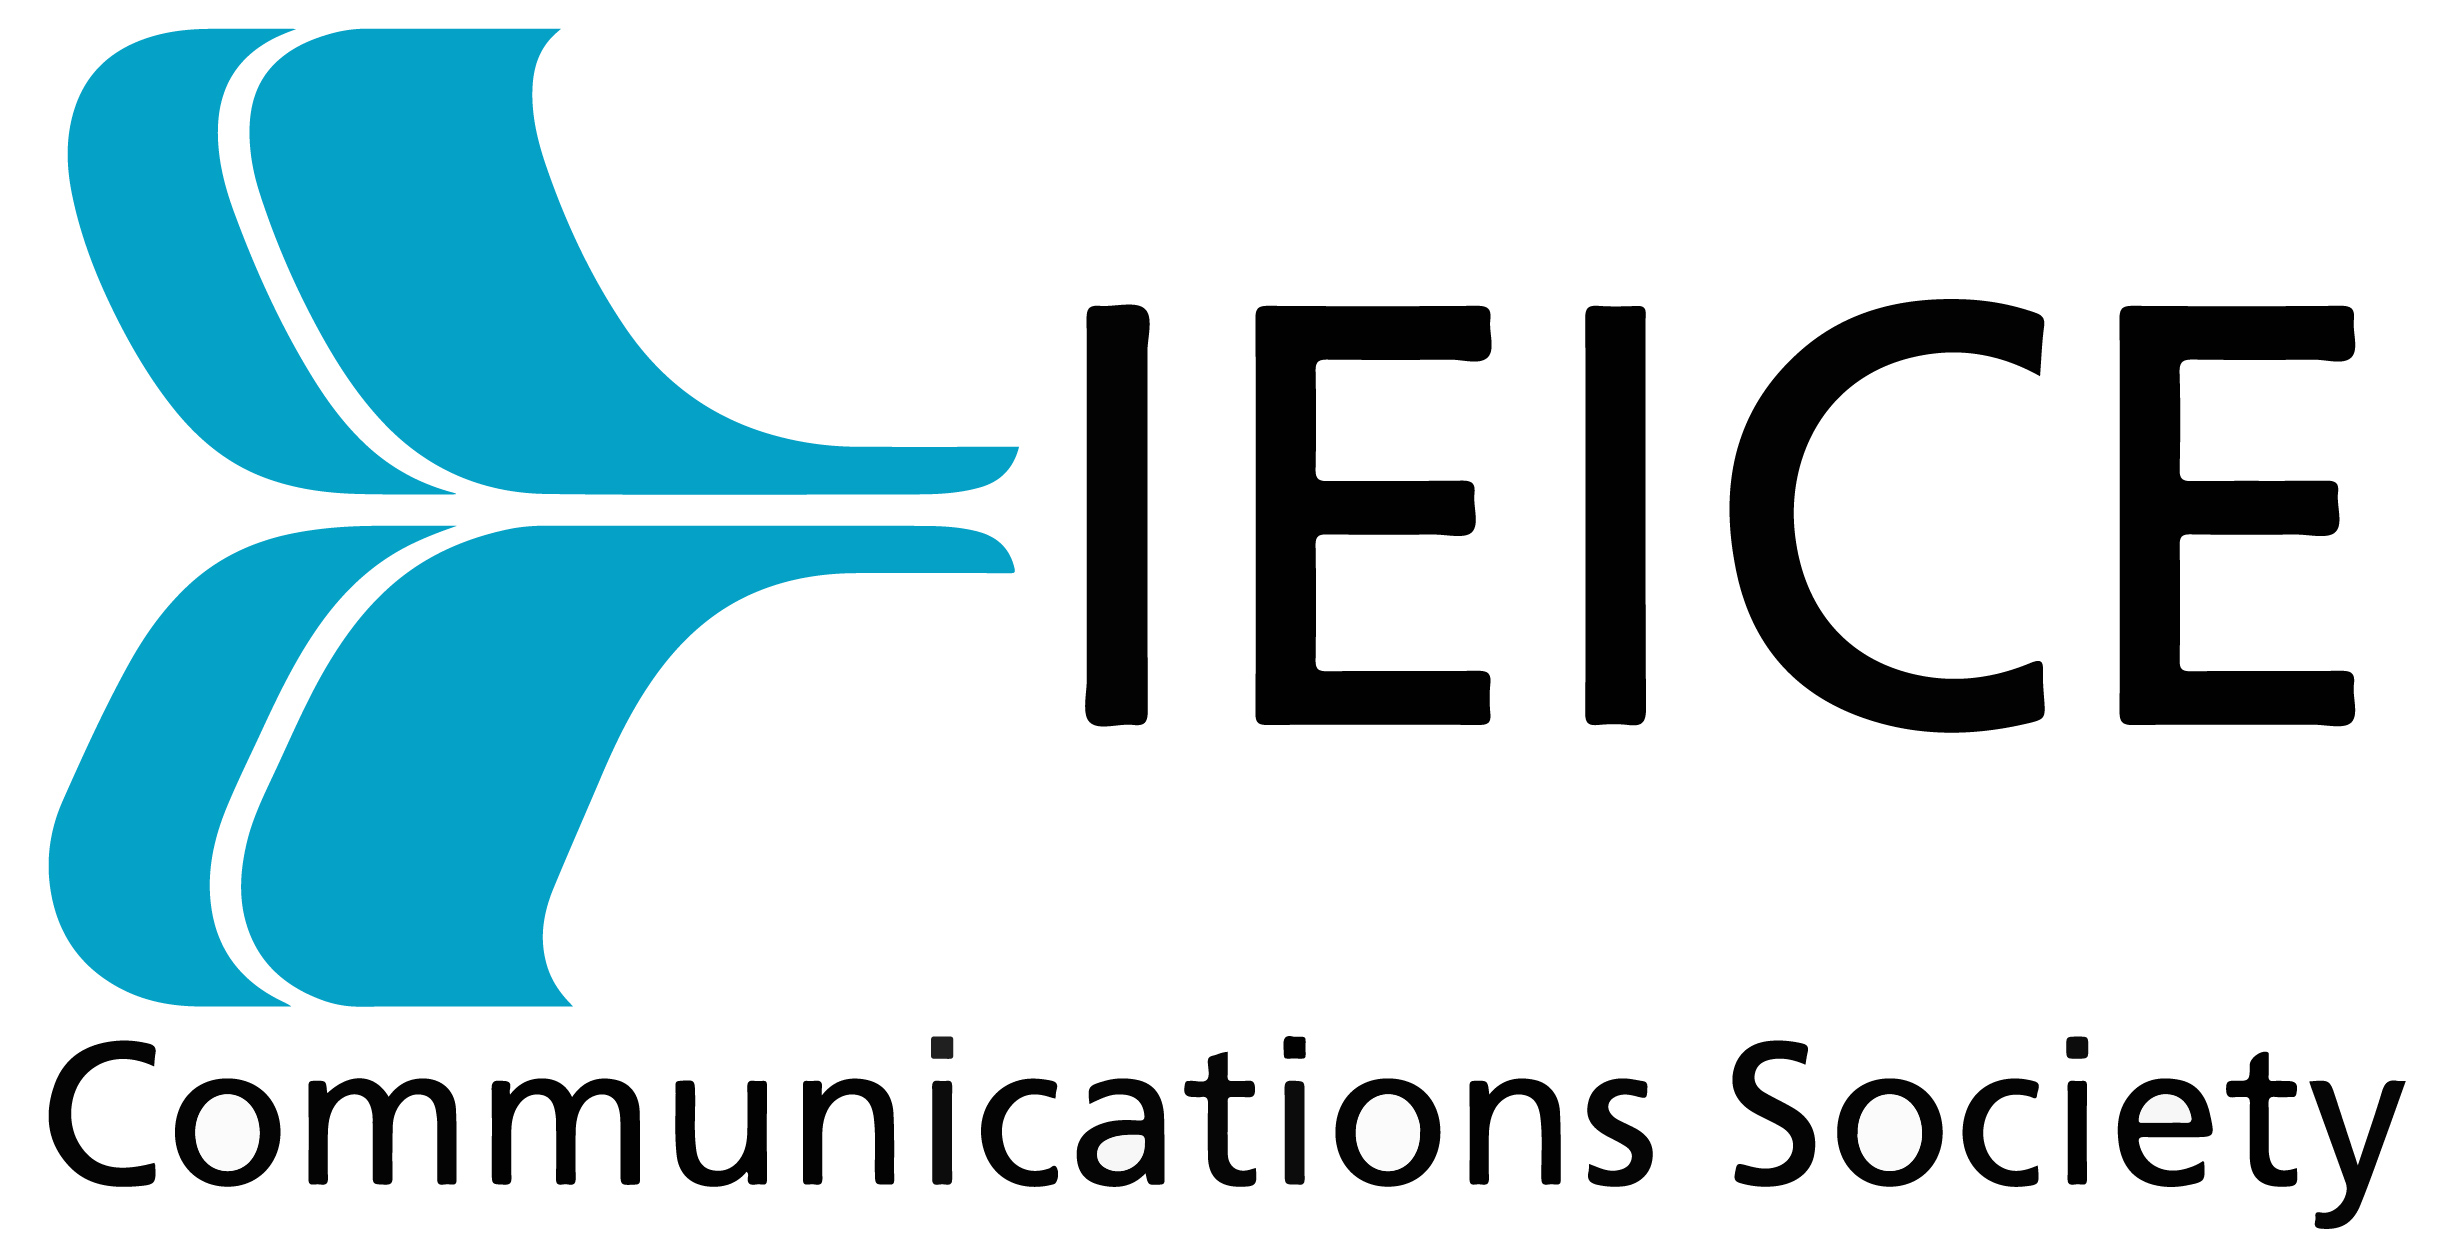 Institute of Electronics, Information and Communication Engineers Communication Society